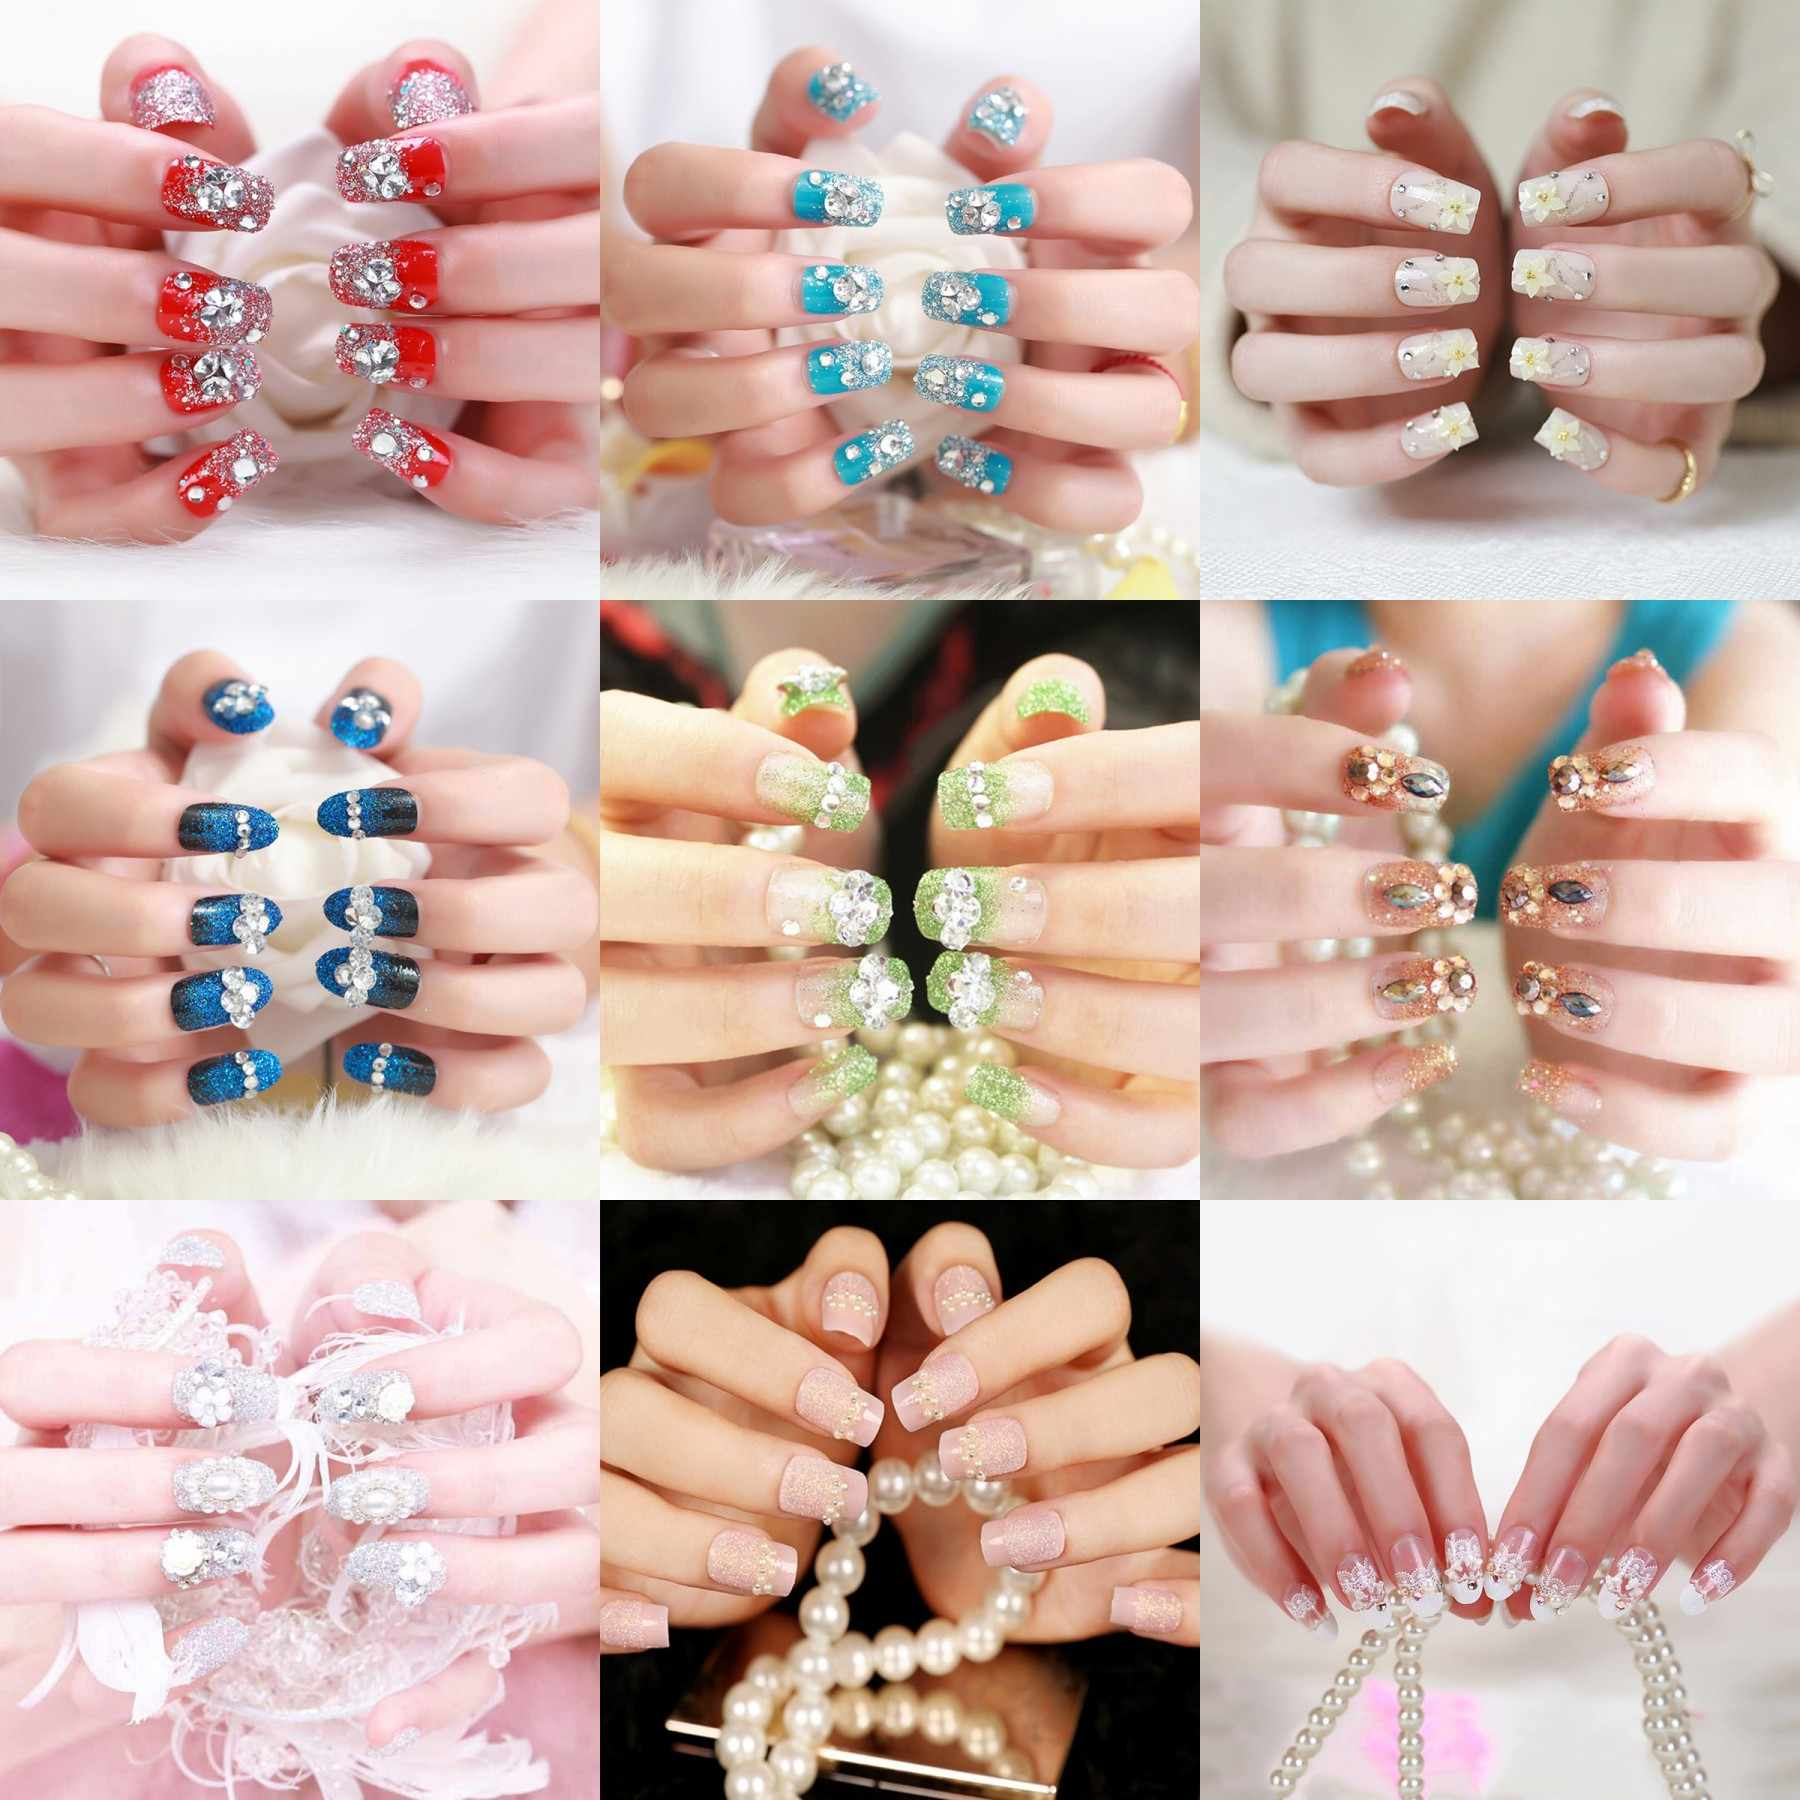 24pcs/Set Fashion Long Design False Nails Rhinestone Bead Fingernail Decor Full Cover Bride Nail Art Tips Fake Nails